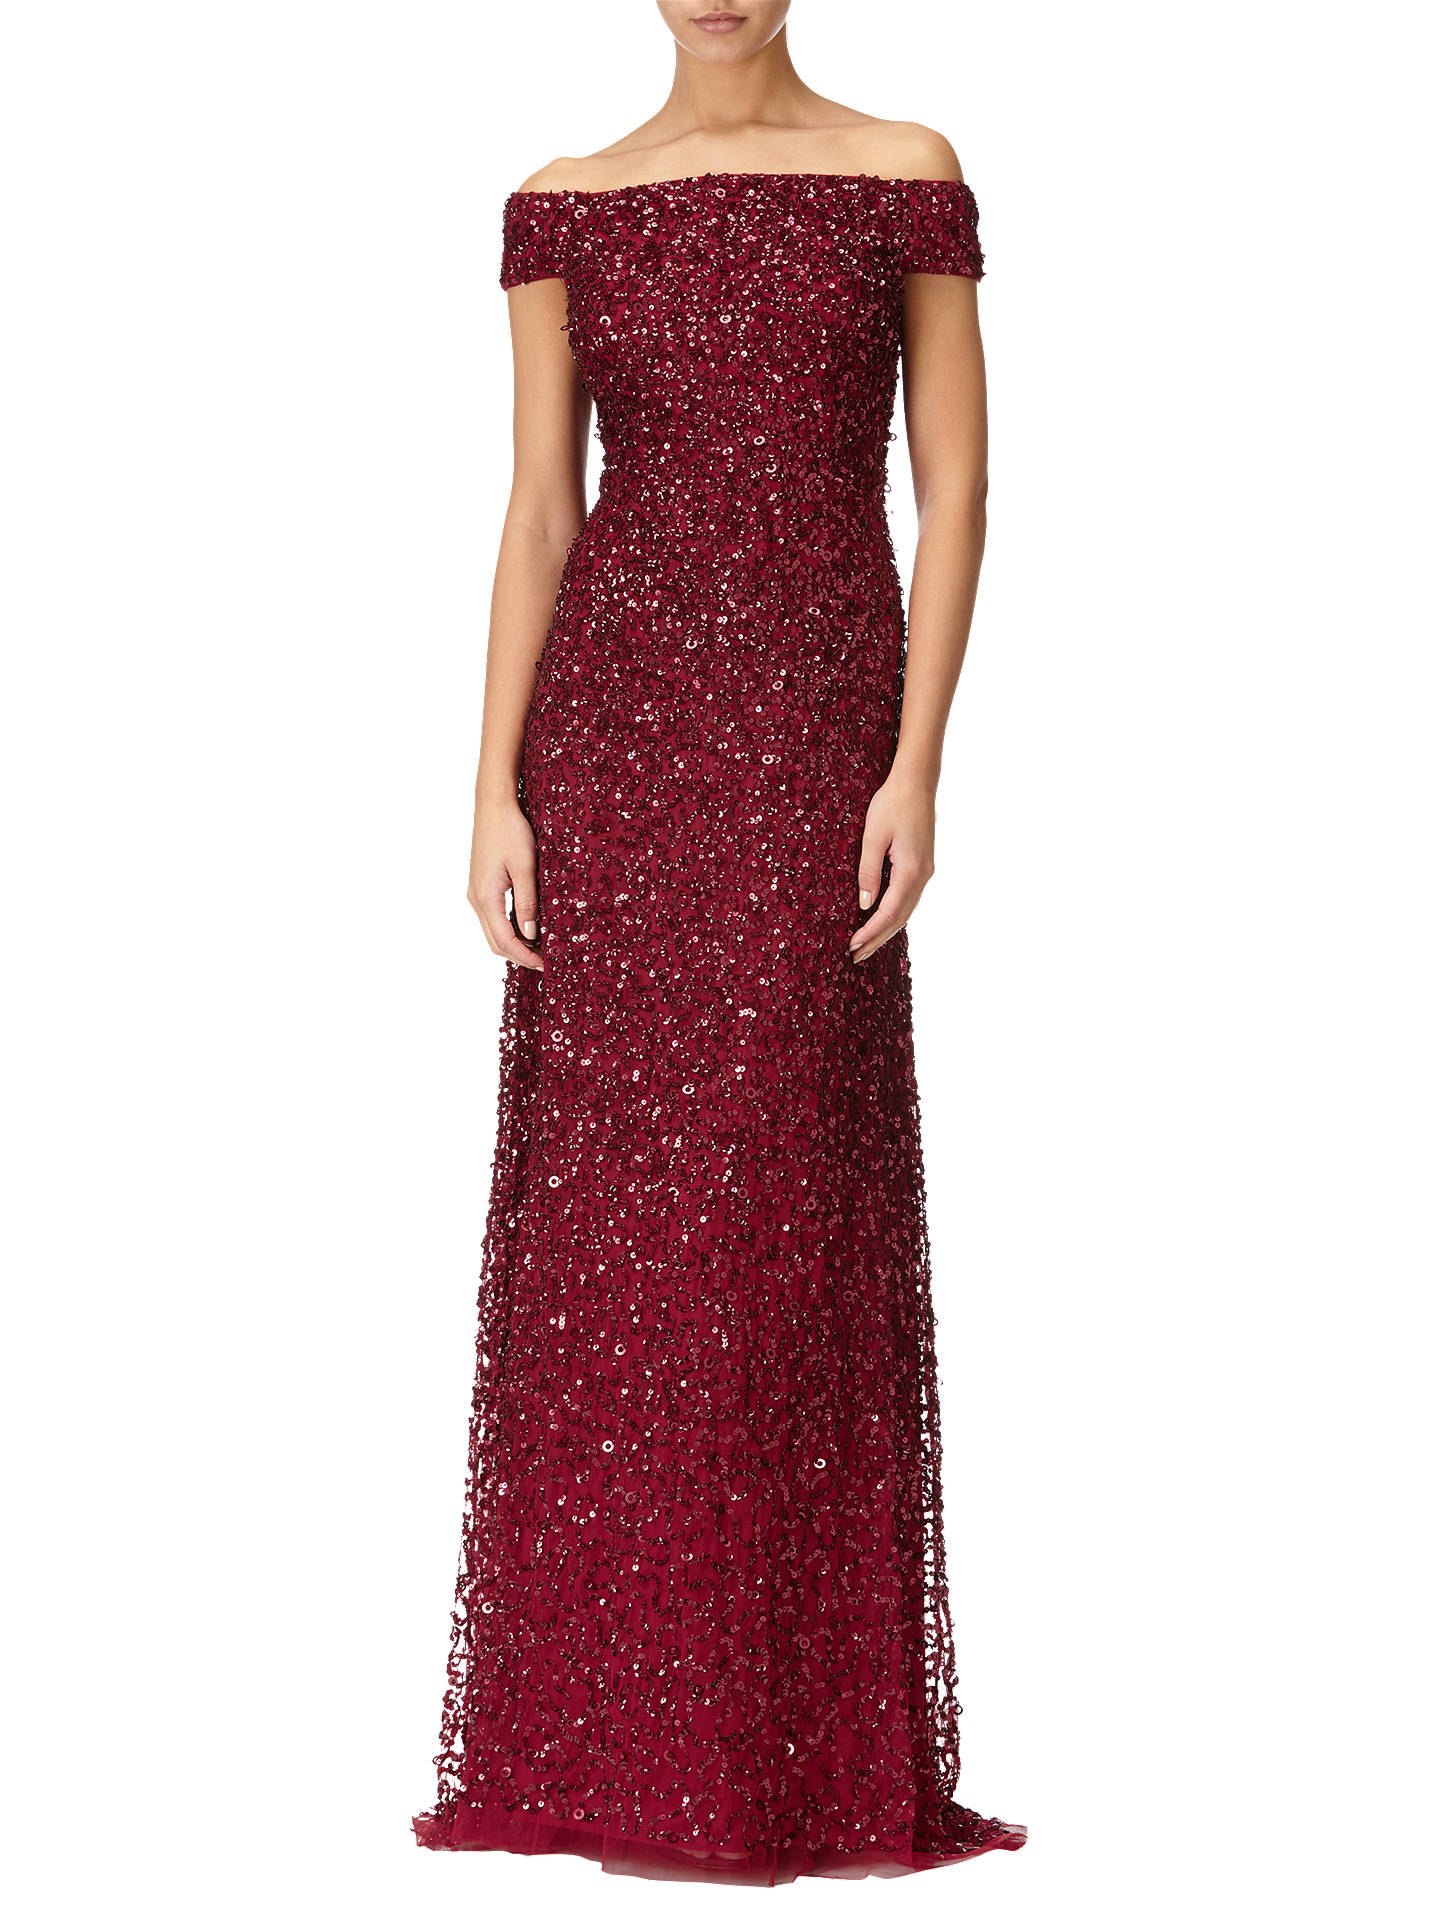 03129916d70 Buy Adrianna Papell Off Shoulder Beaded Gown